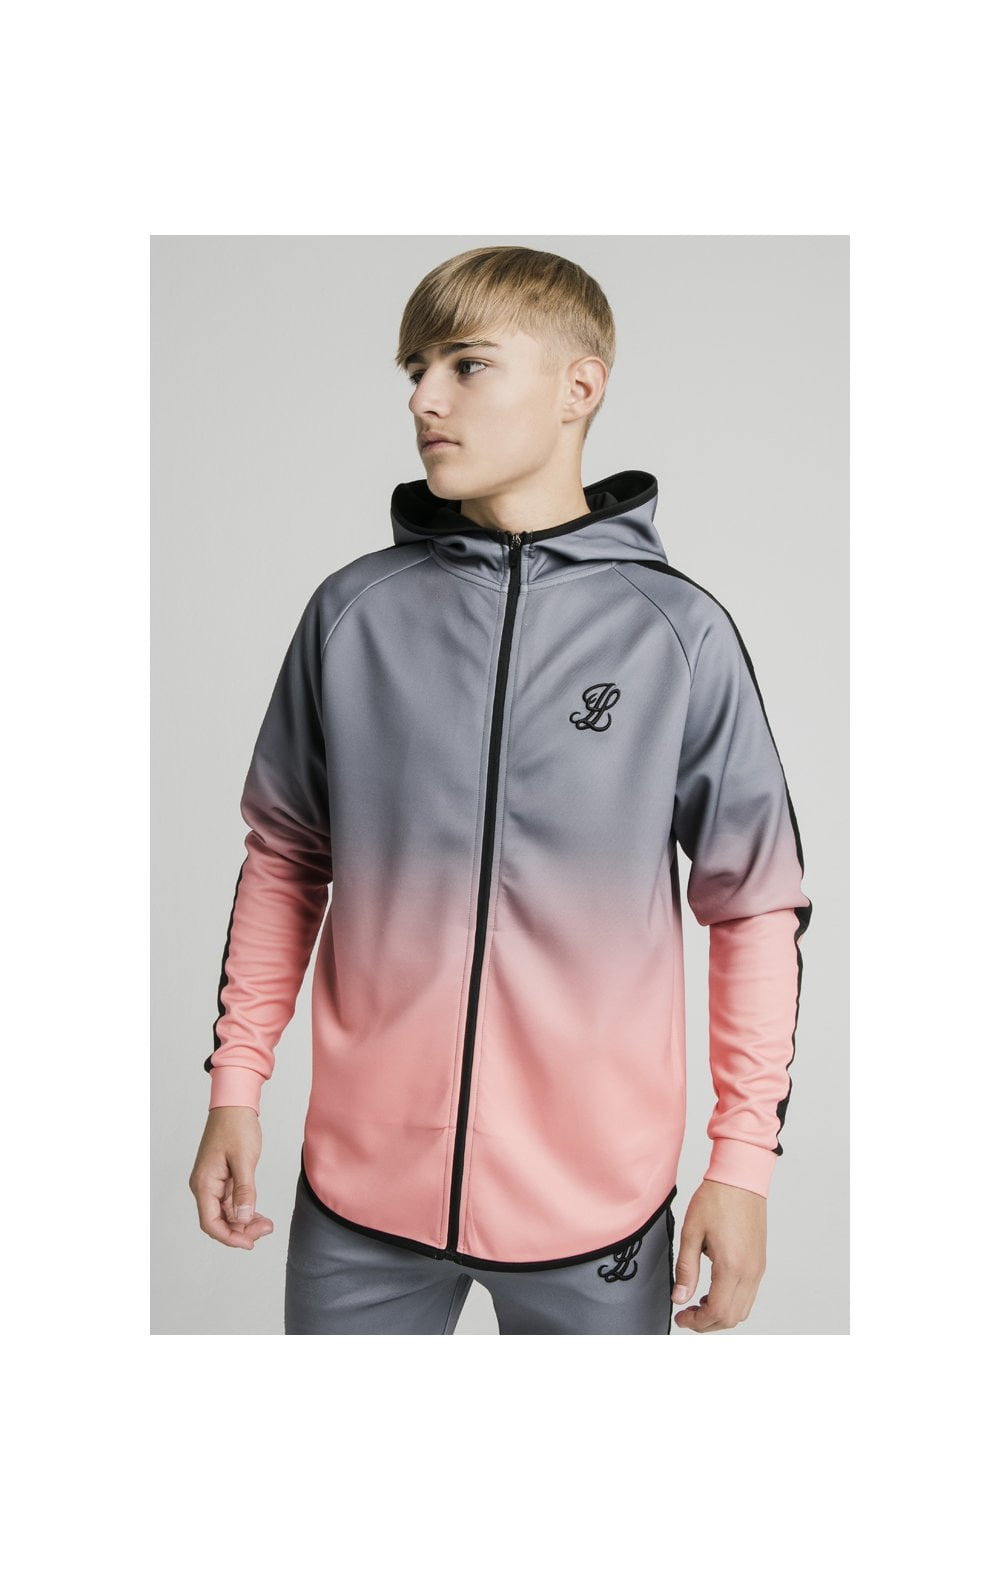 Illusive London Athlete Zip Through Fade Hoodie - Grey & Peach